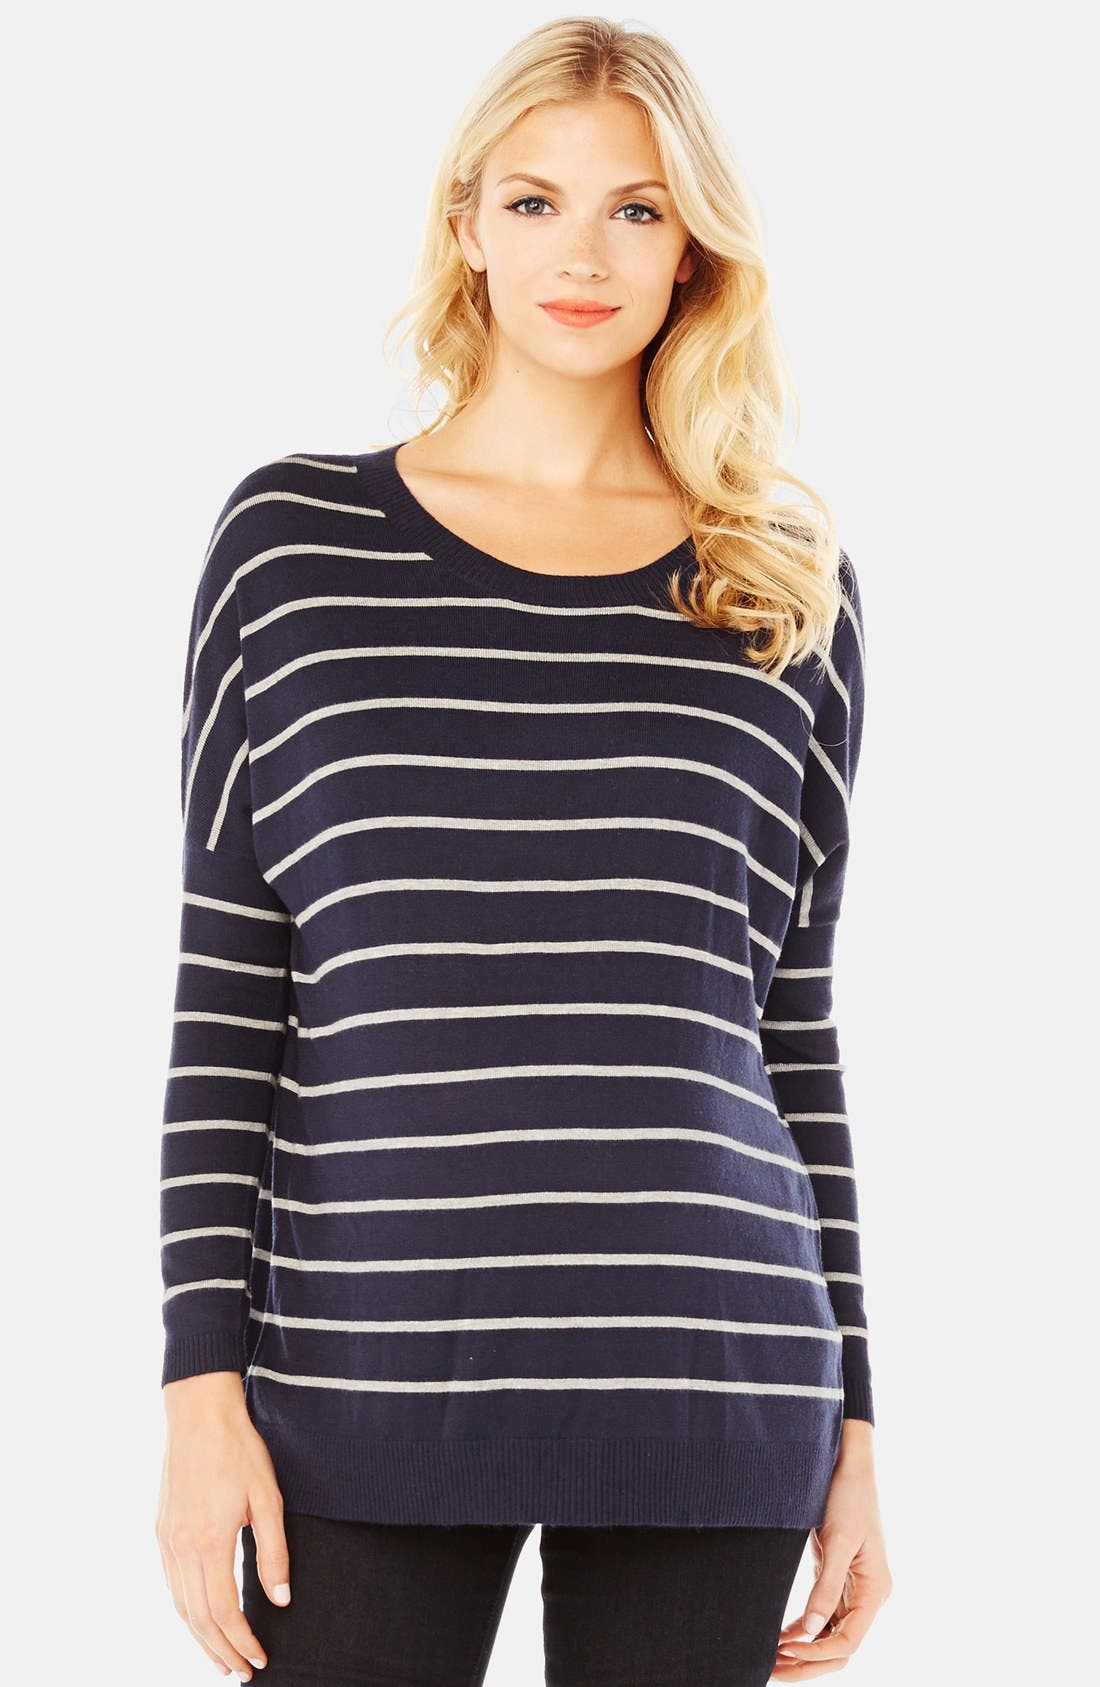 'Whitney' Maternity Sweater,                             Main thumbnail 1, color,                             Navy/ Grey Stripe